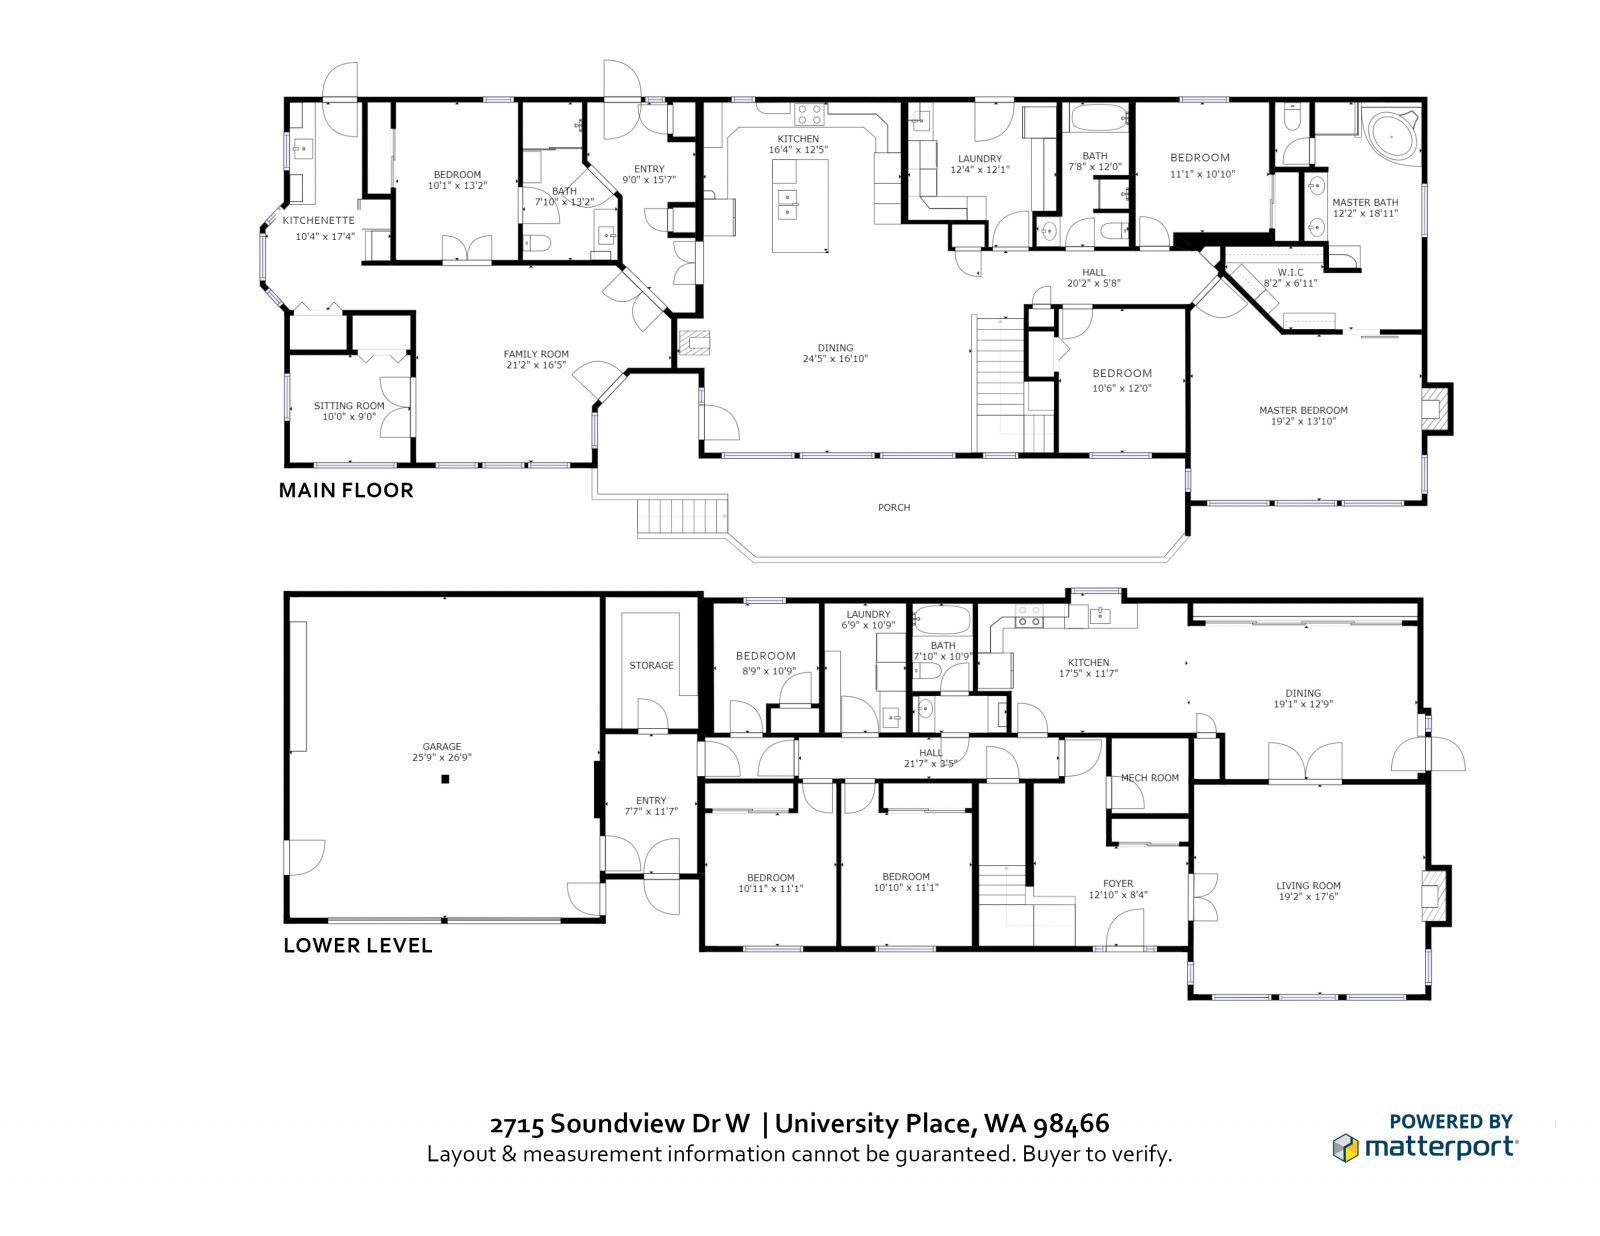 FLOOR PLAN: 2715 Soundview Dr W, University Place WA 98466